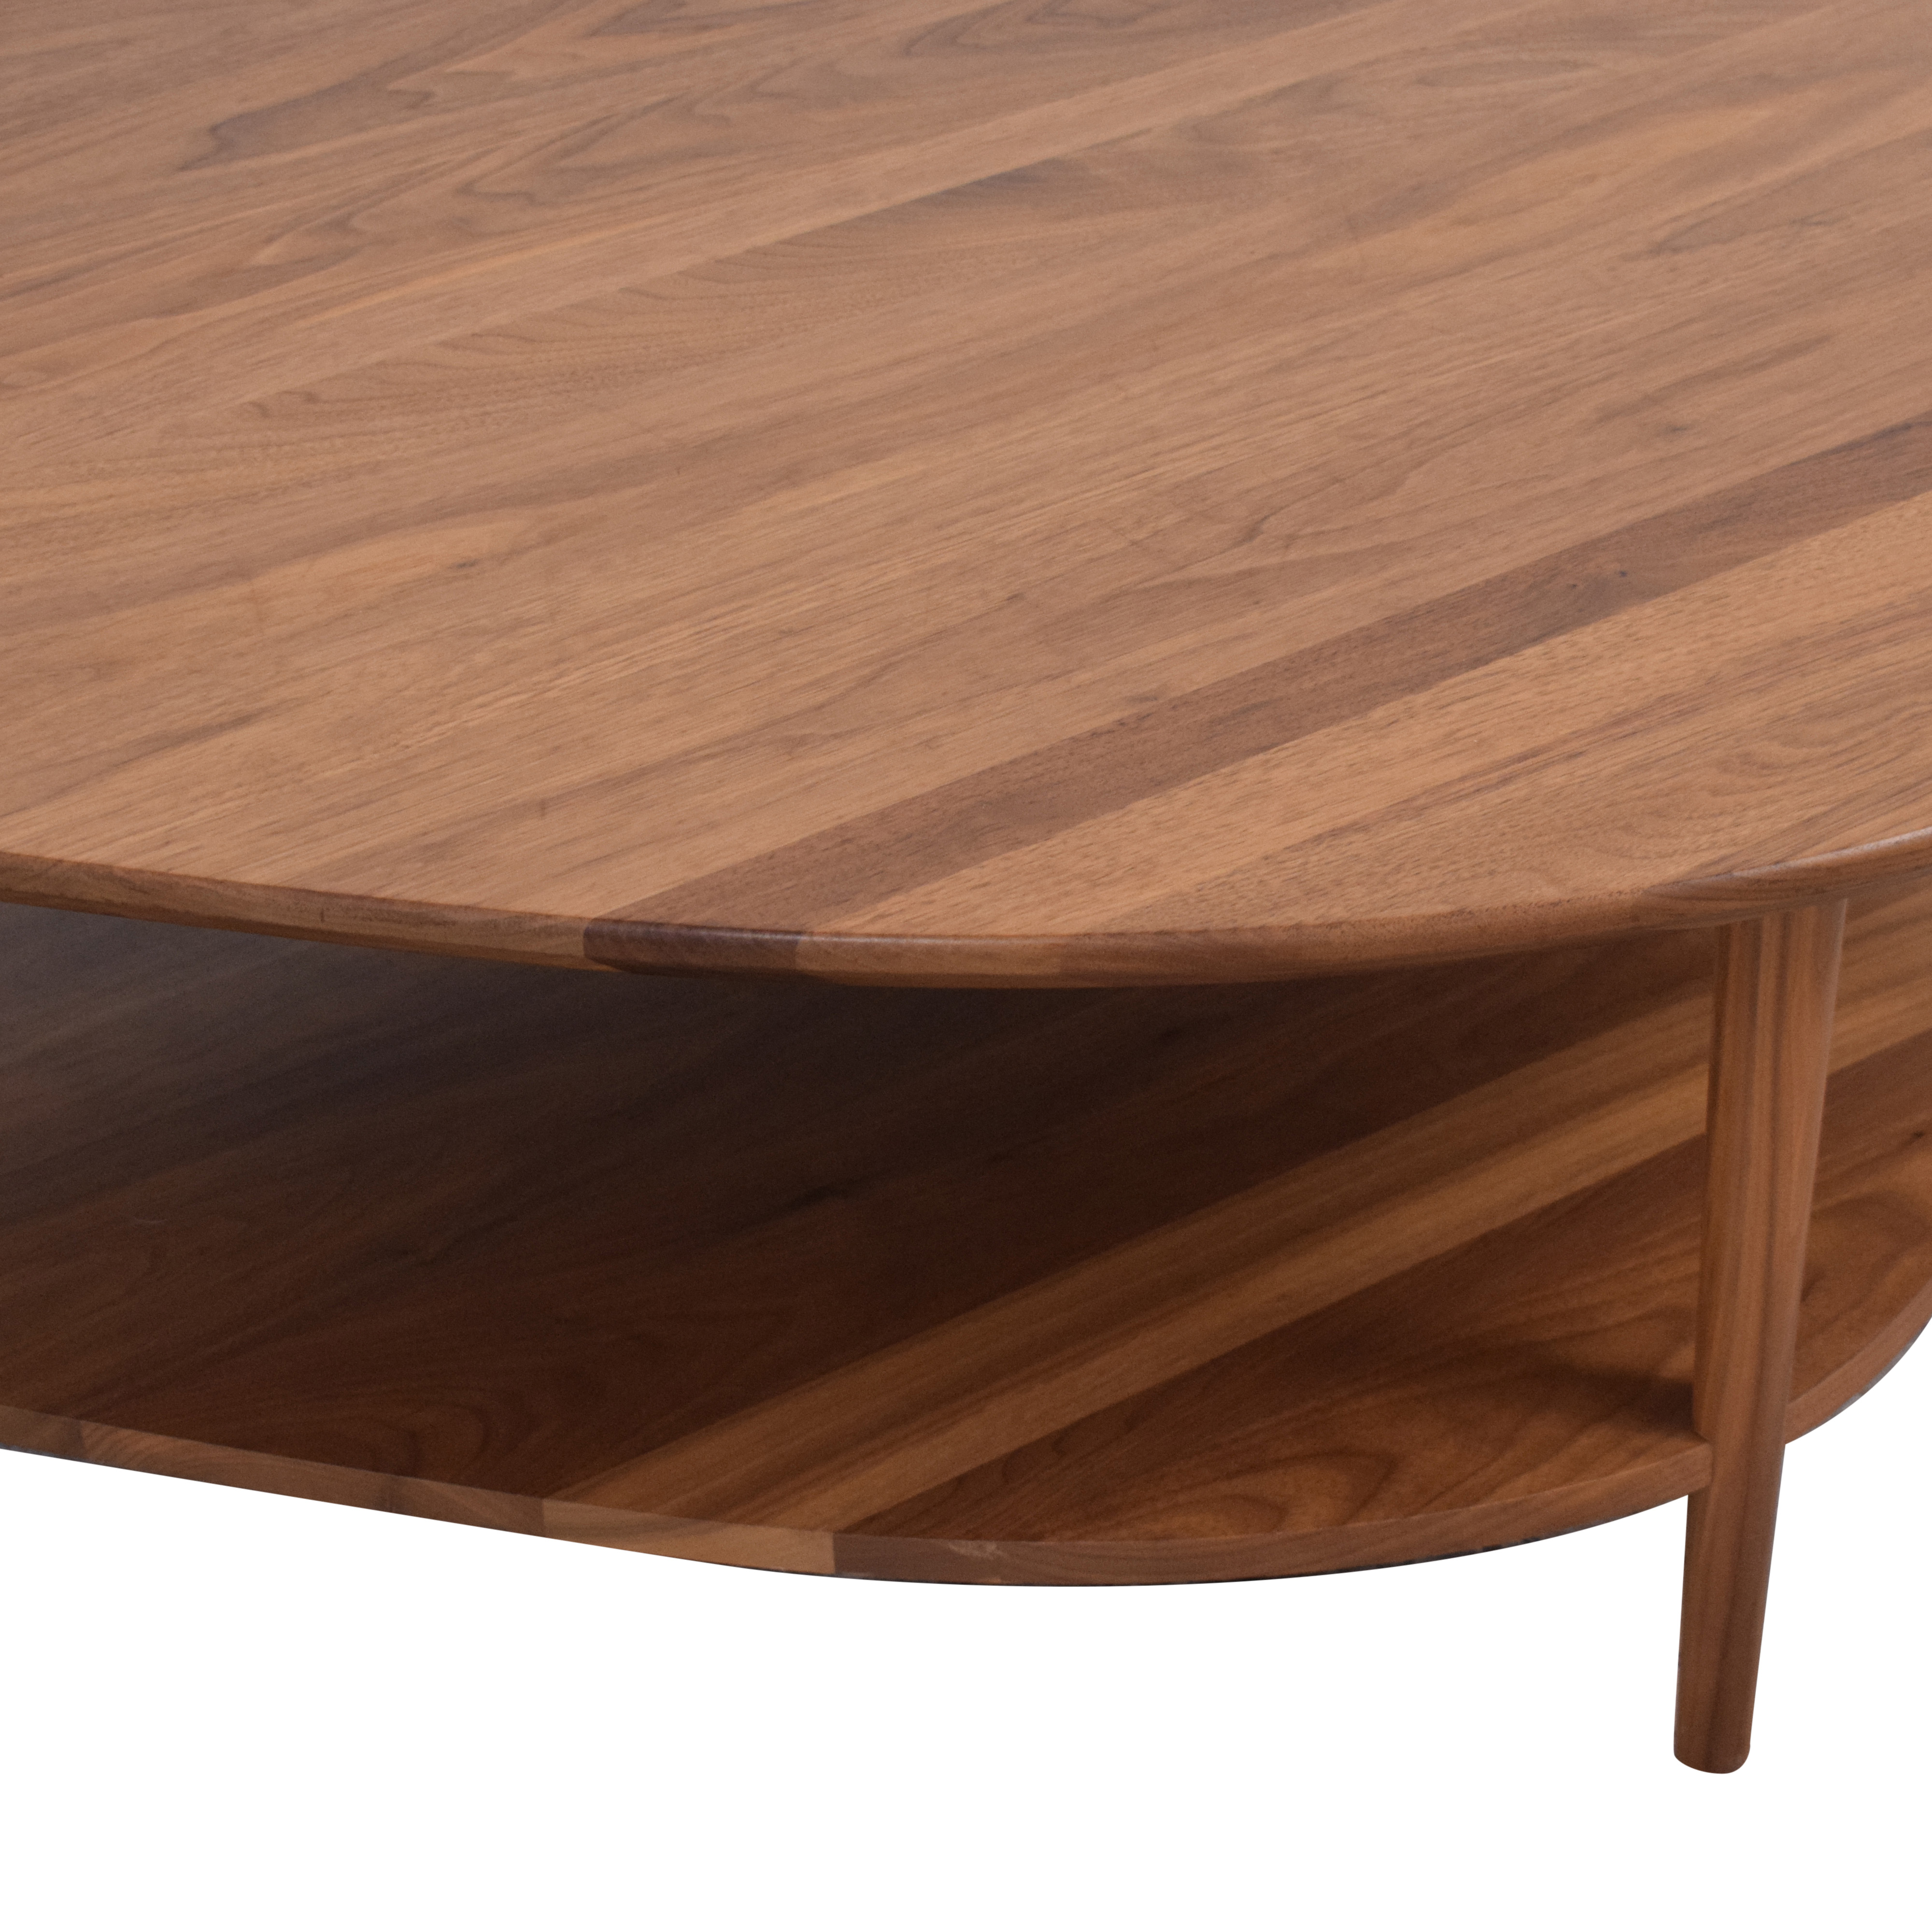 Room & Board Gibson Coffee Table / Tables